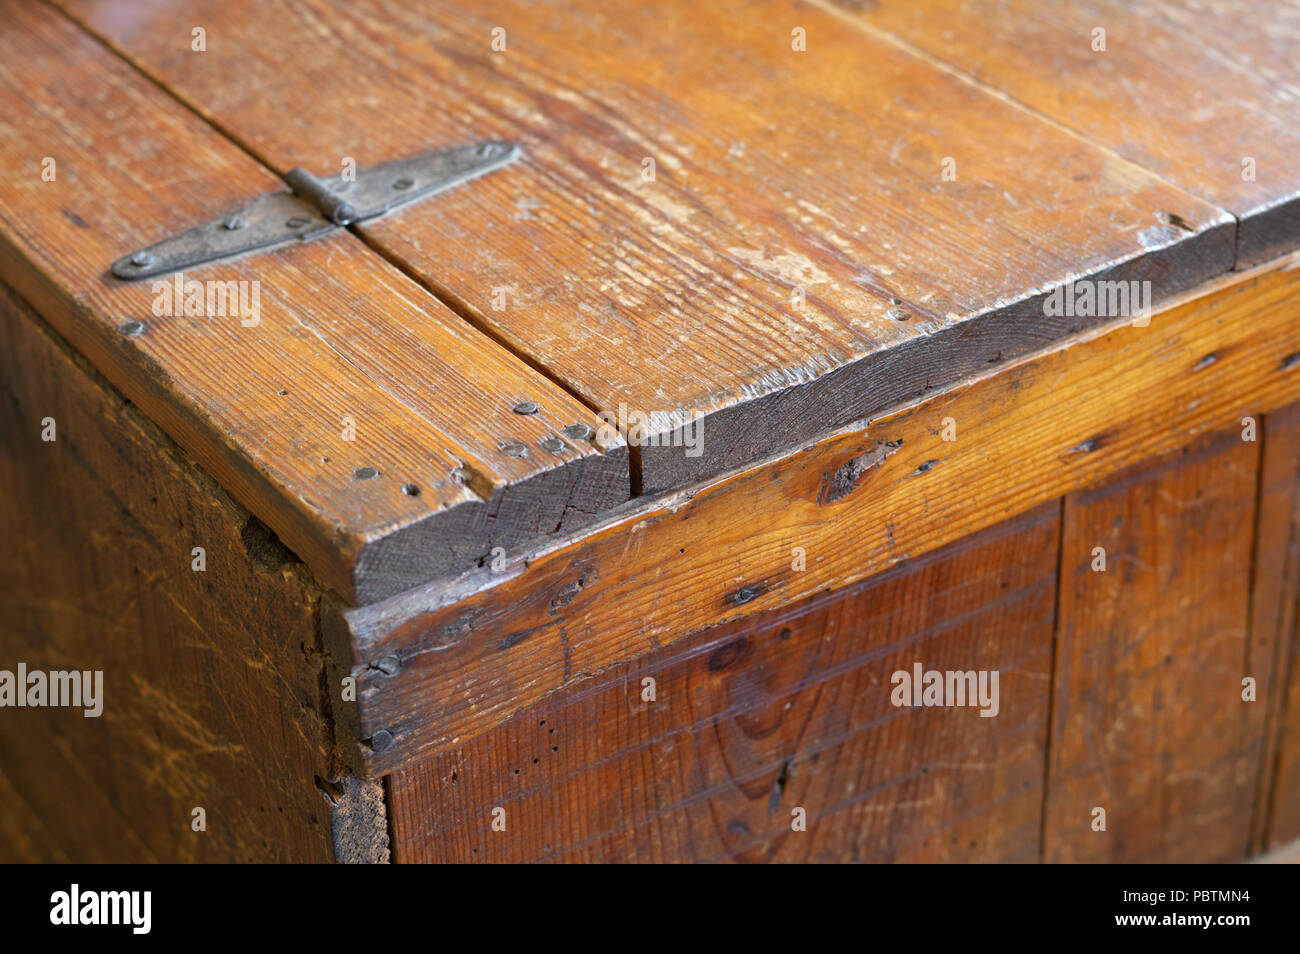 Vintage Antique Repurposed Book Crate Table with Hinge - Stock Image